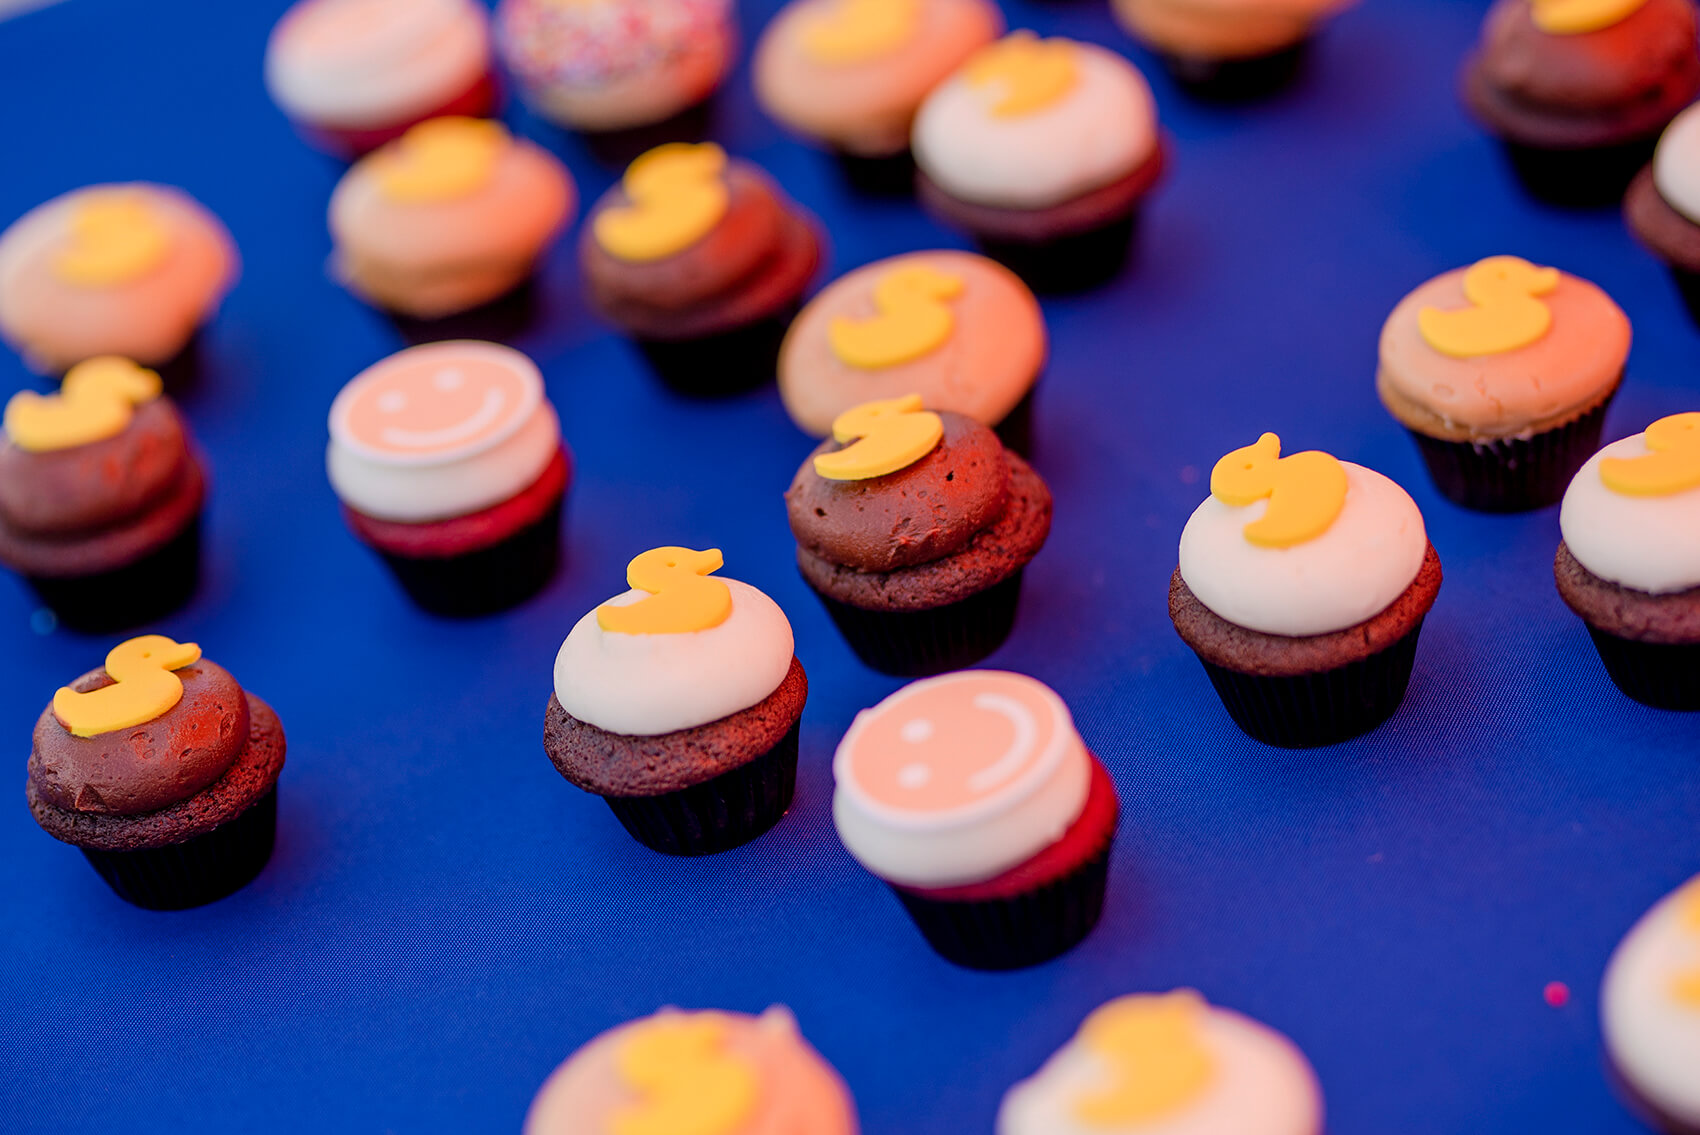 tiny cupcakes are decorated with smiles and rubber ducks